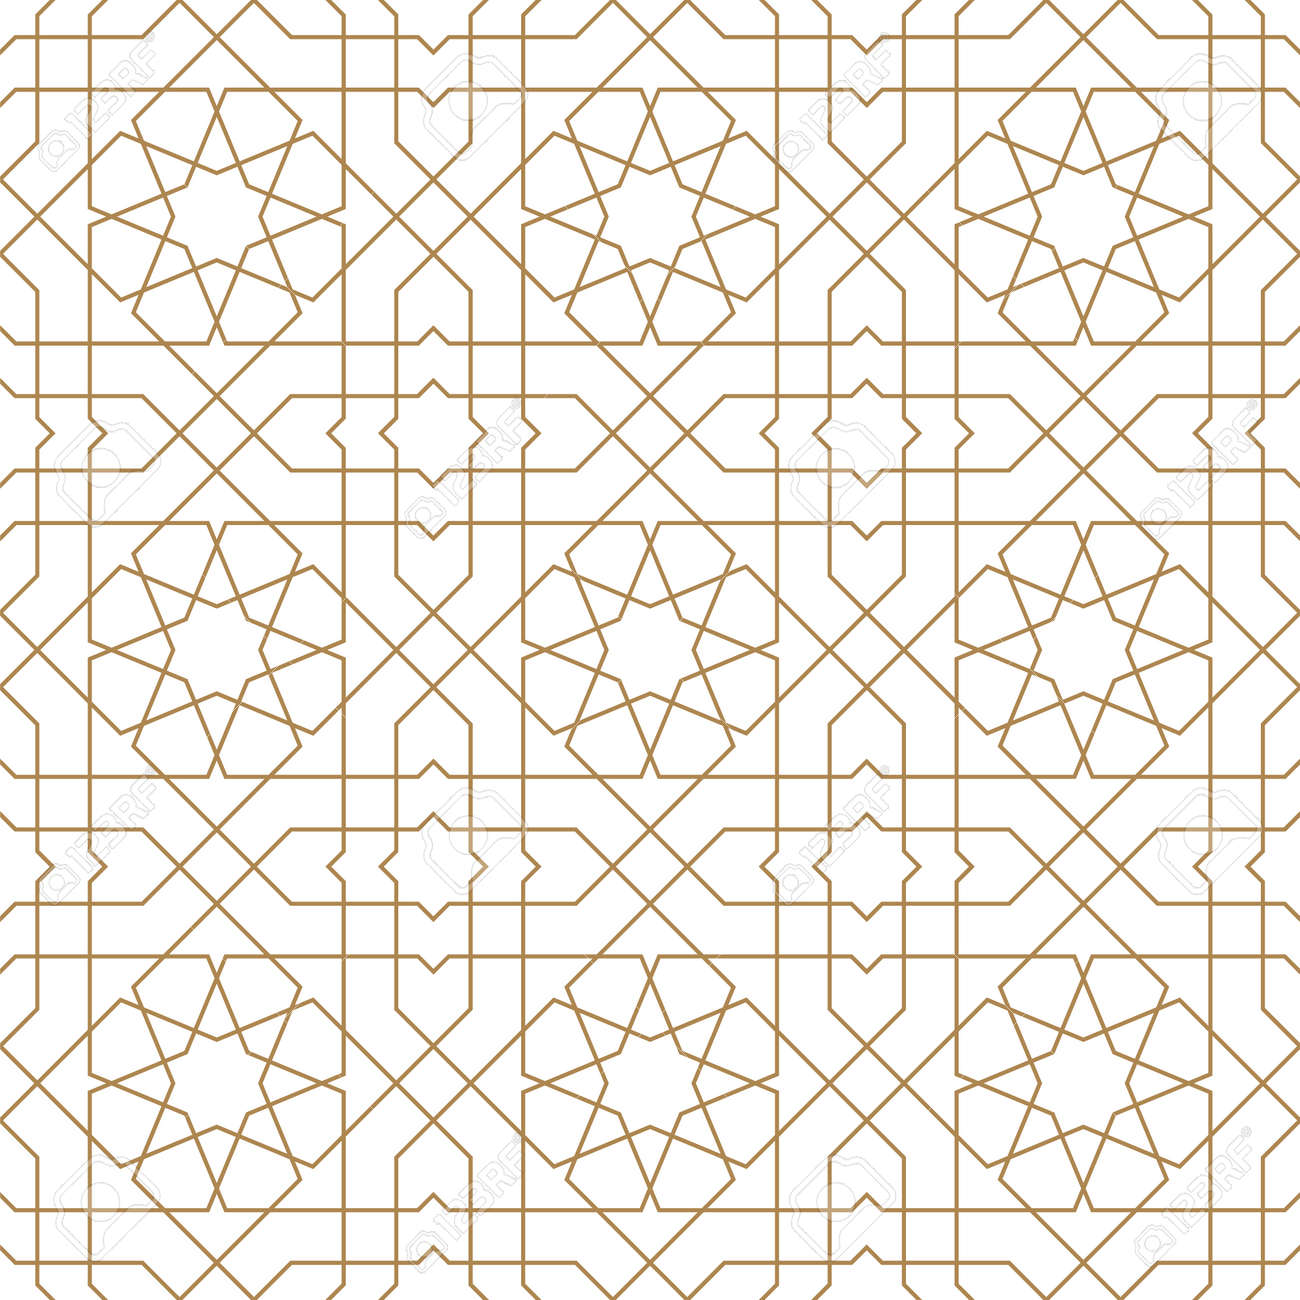 Seamless geometric ornament based on traditional arabic art.Brown color lines.Great design for fabric,textile,cover,wrapping paper,background.Average thickness lines. - 136798308